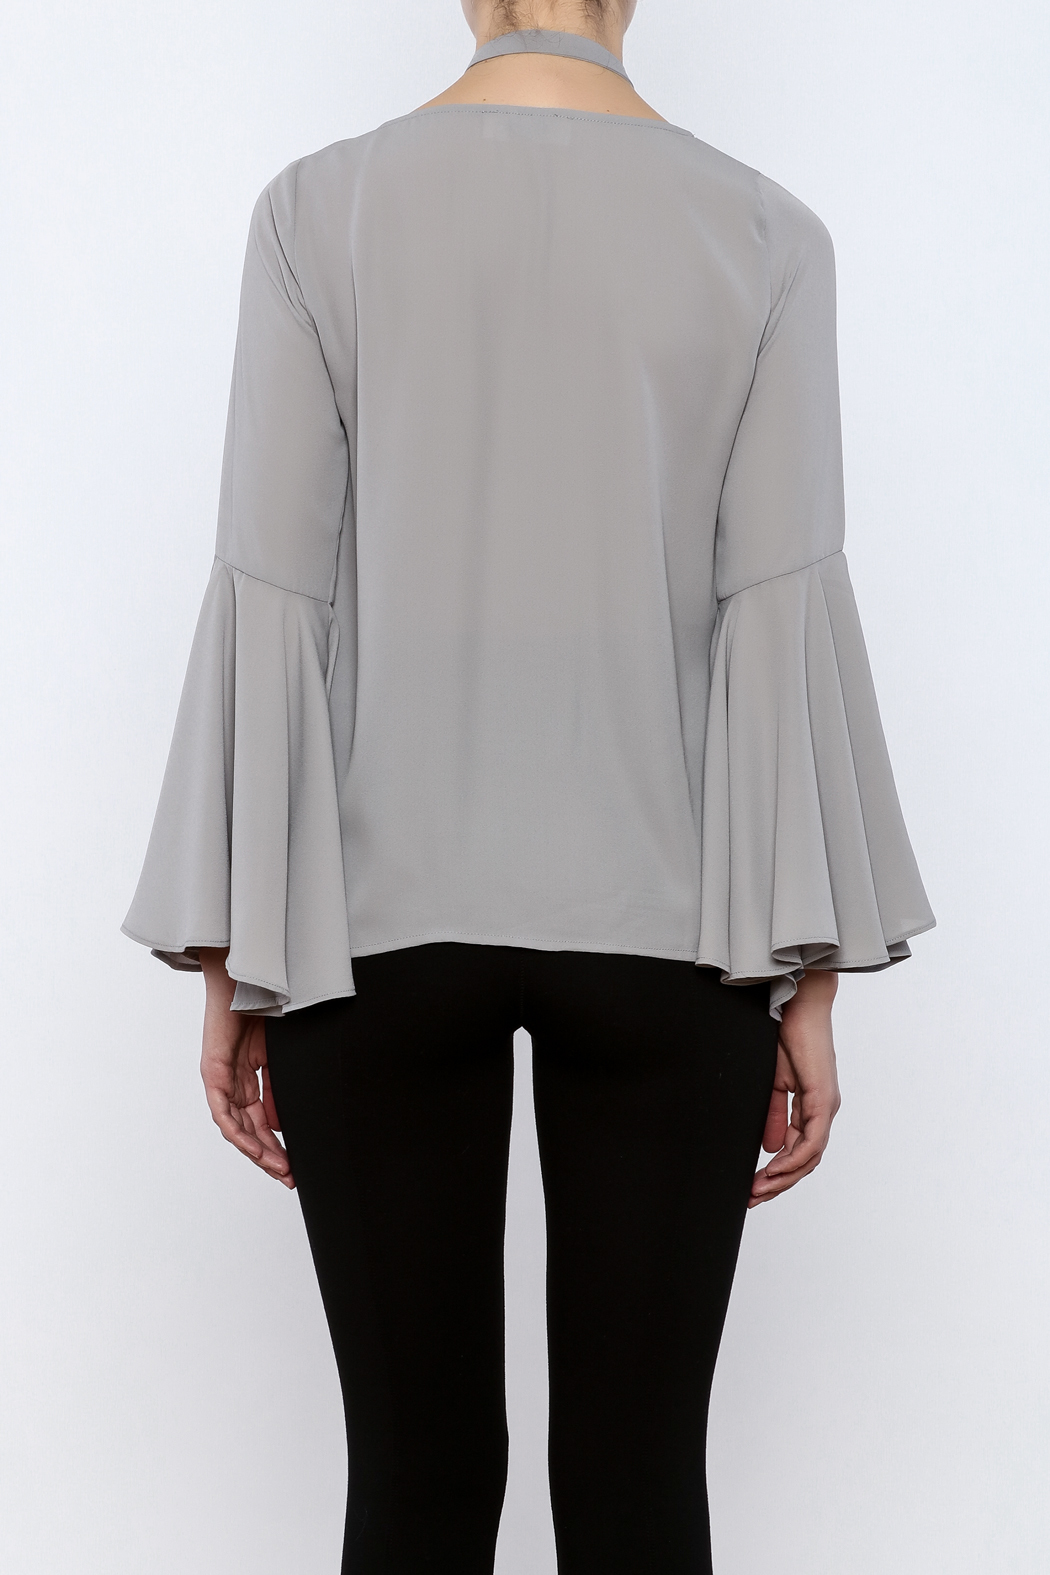 Bacio Grey Bell Sleeve Top - Back Cropped Image